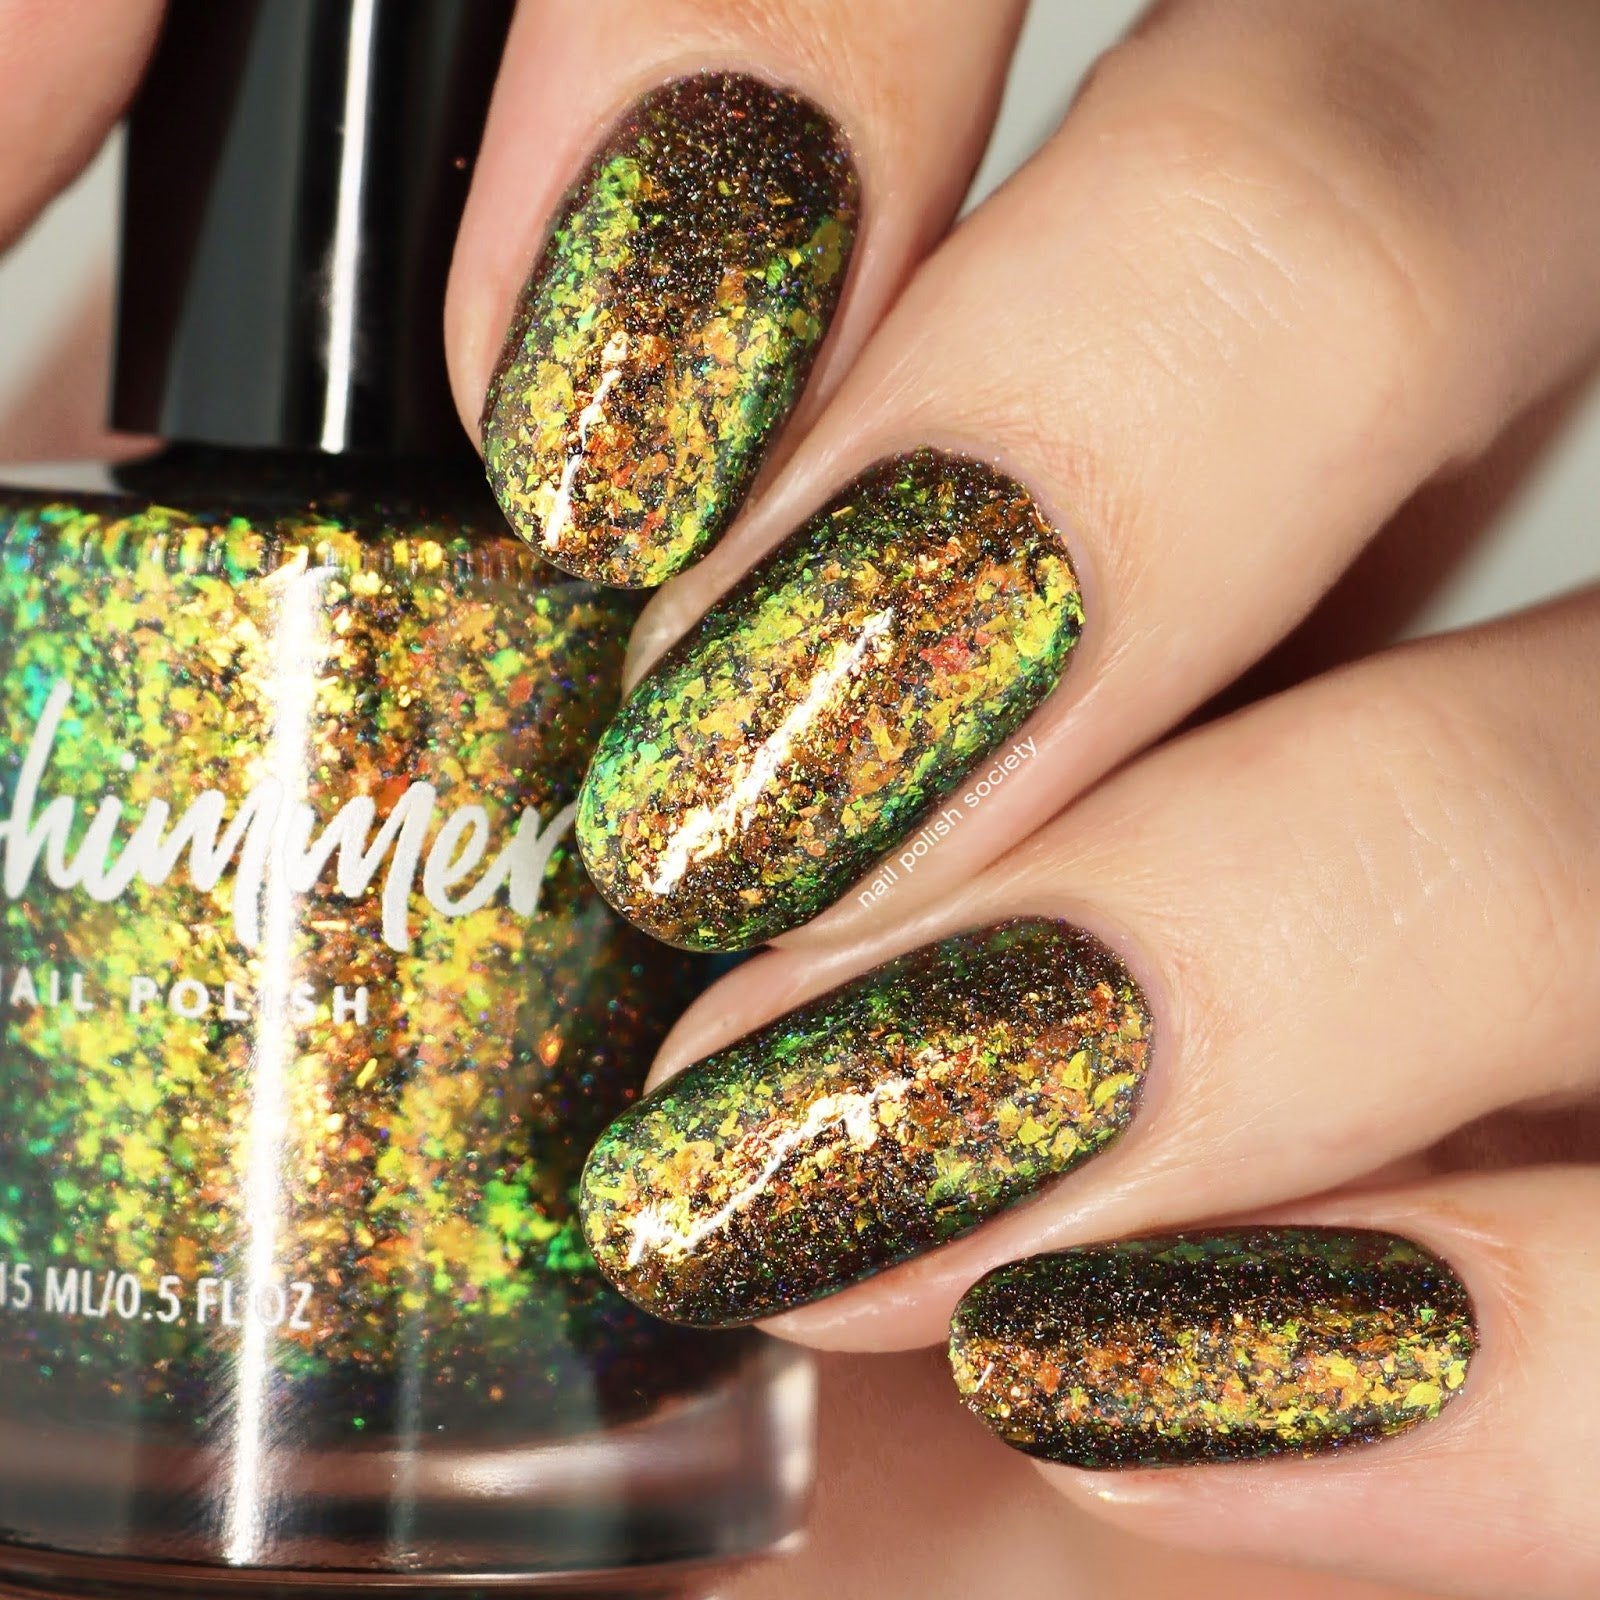 *PRE-SALE* KBShimmer - Hanging With My Grill Friends